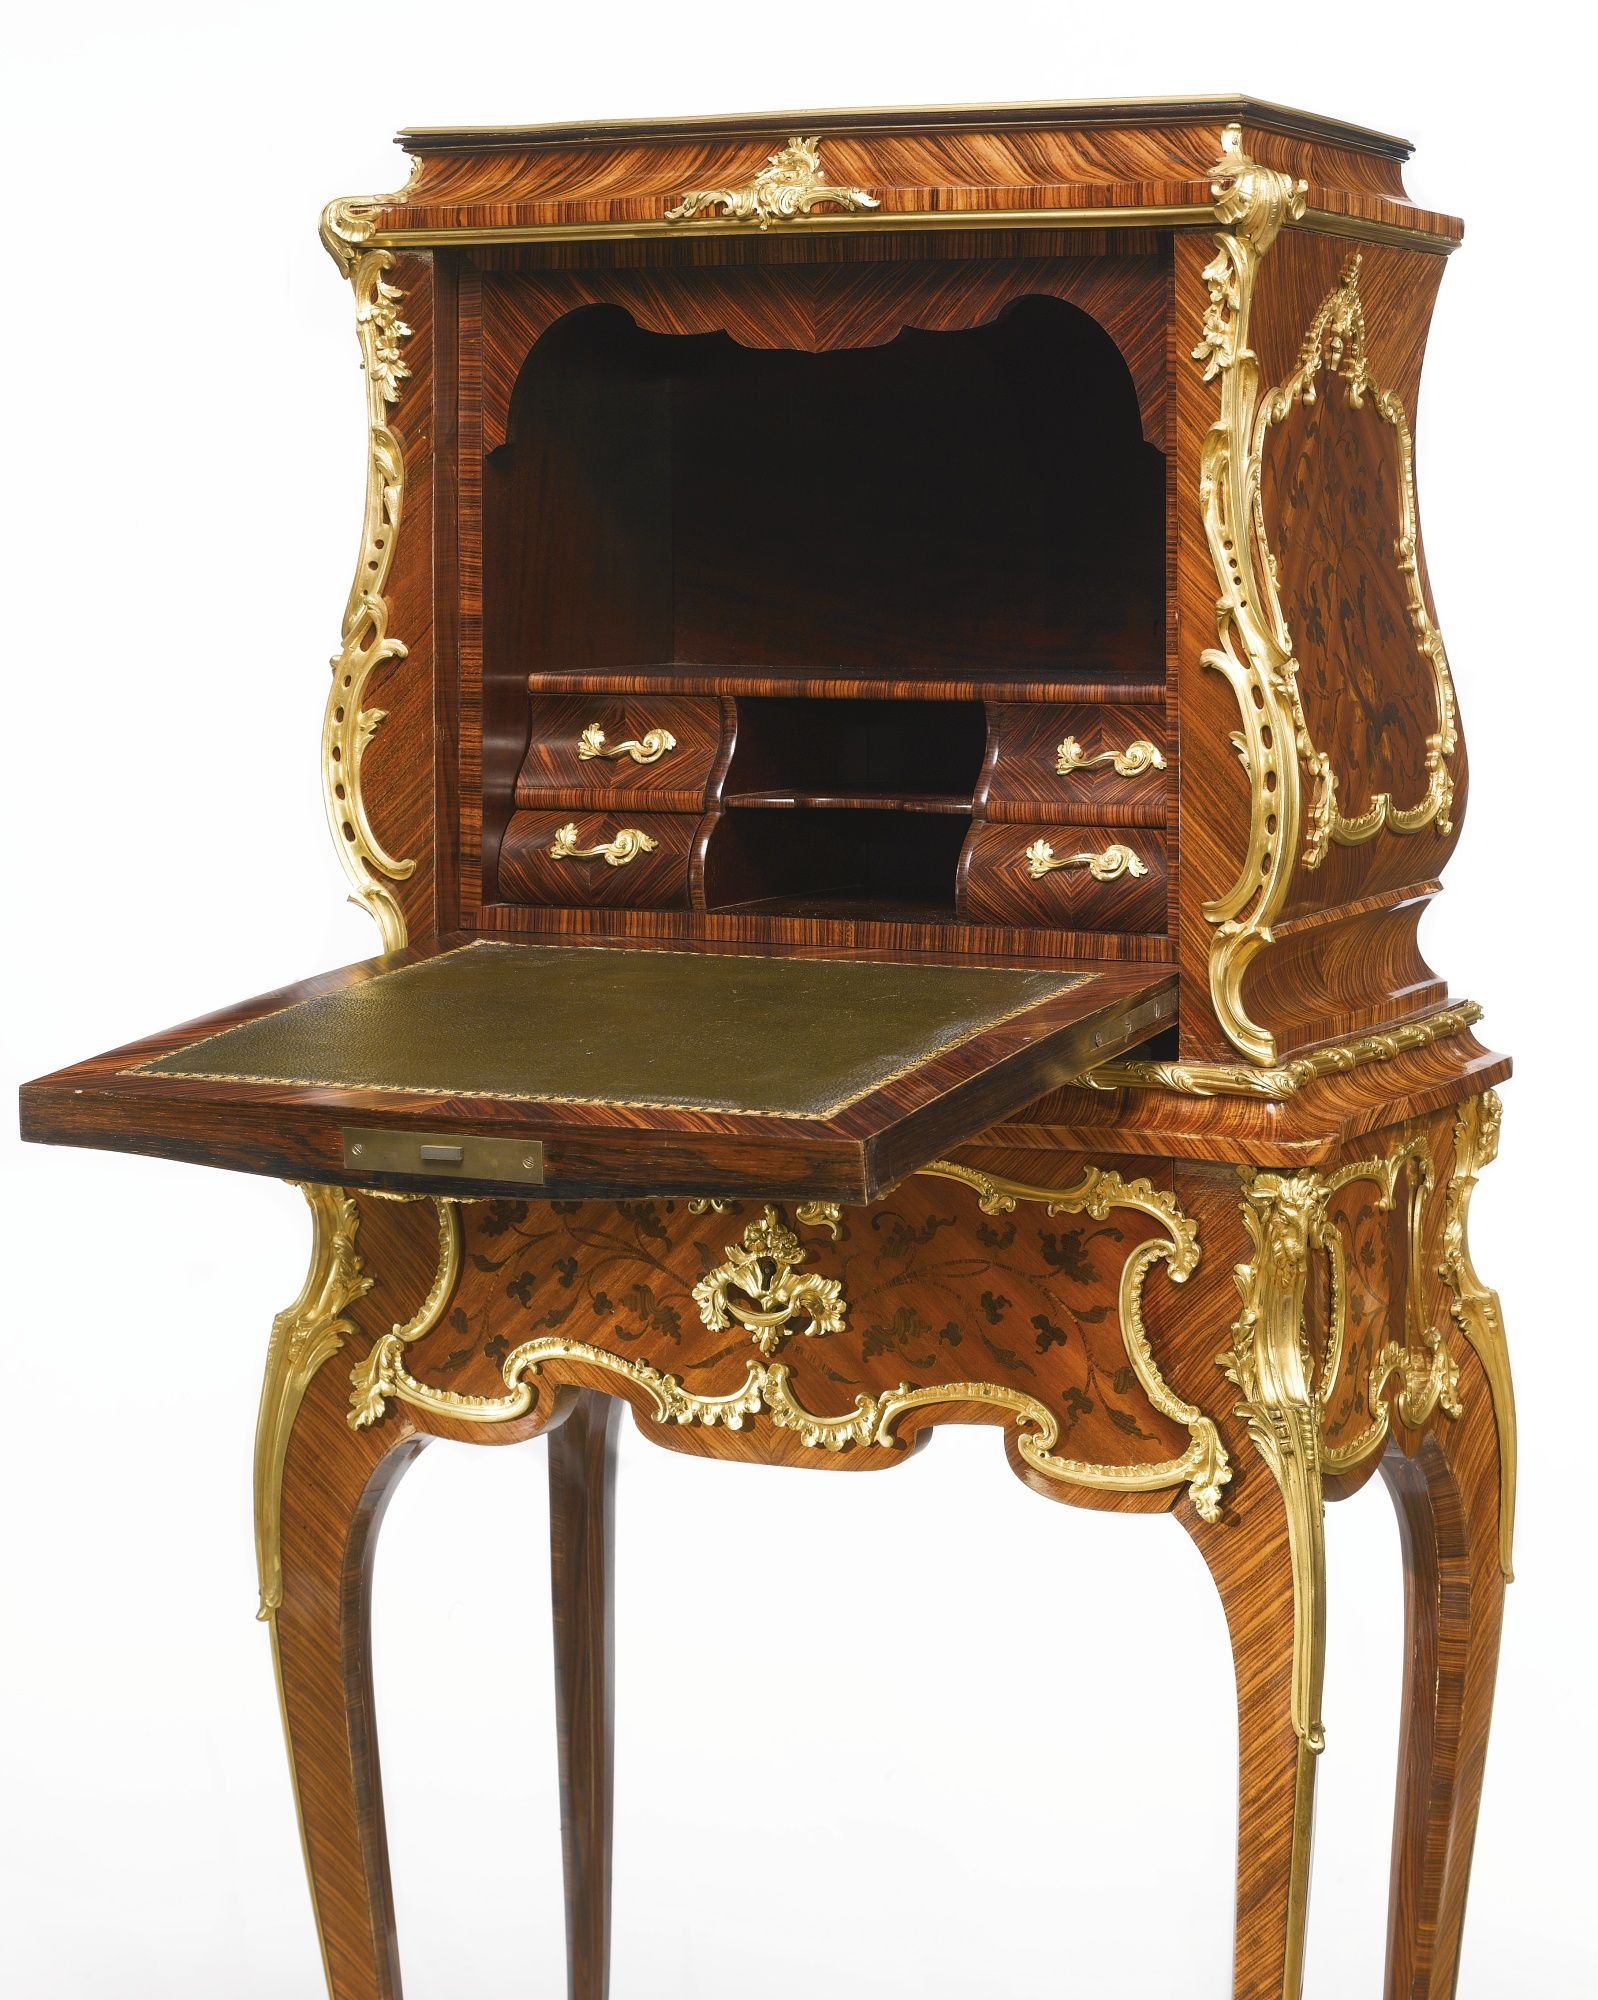 a louis xv style gilt bronze mounted kingwood satin and end cut floral marquetry secr taire. Black Bedroom Furniture Sets. Home Design Ideas